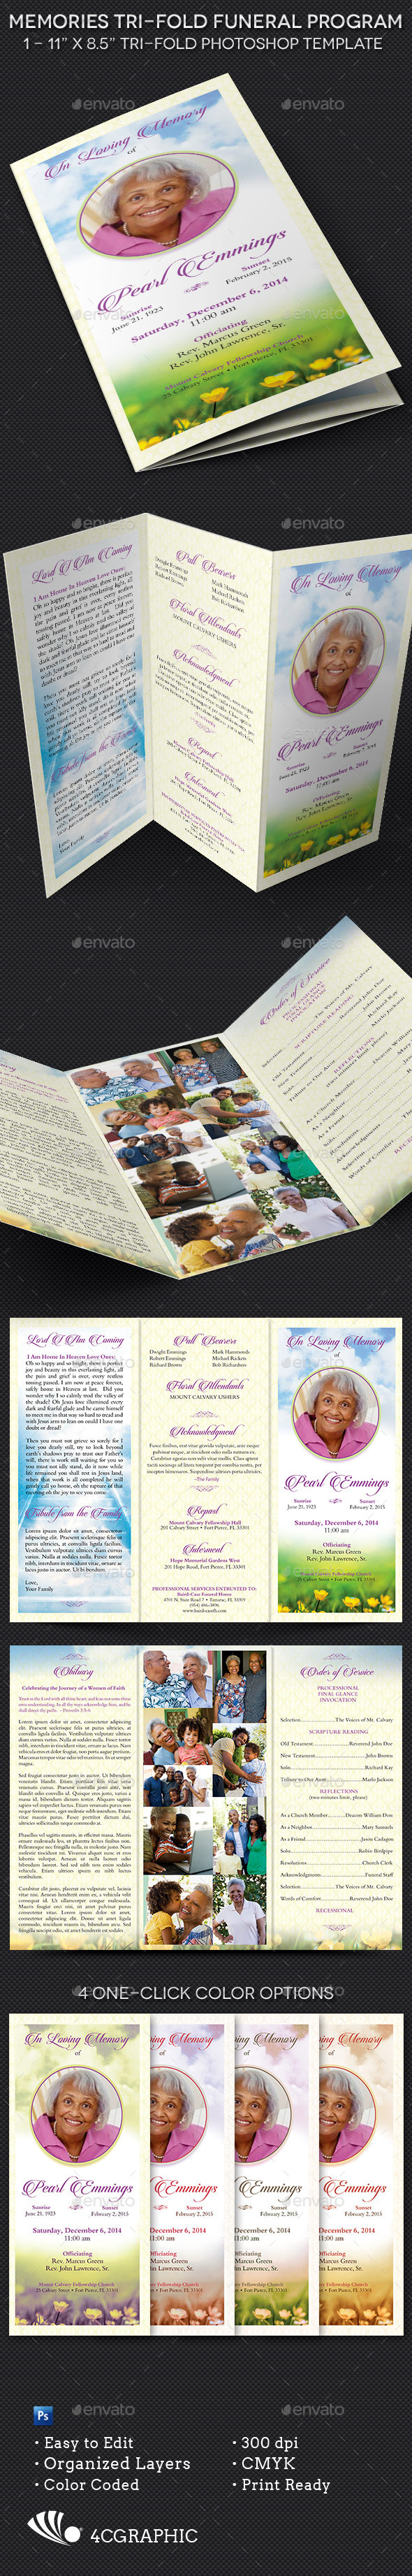 GraphicRiver Memories Tri-fold Funeral Program Template 9723088